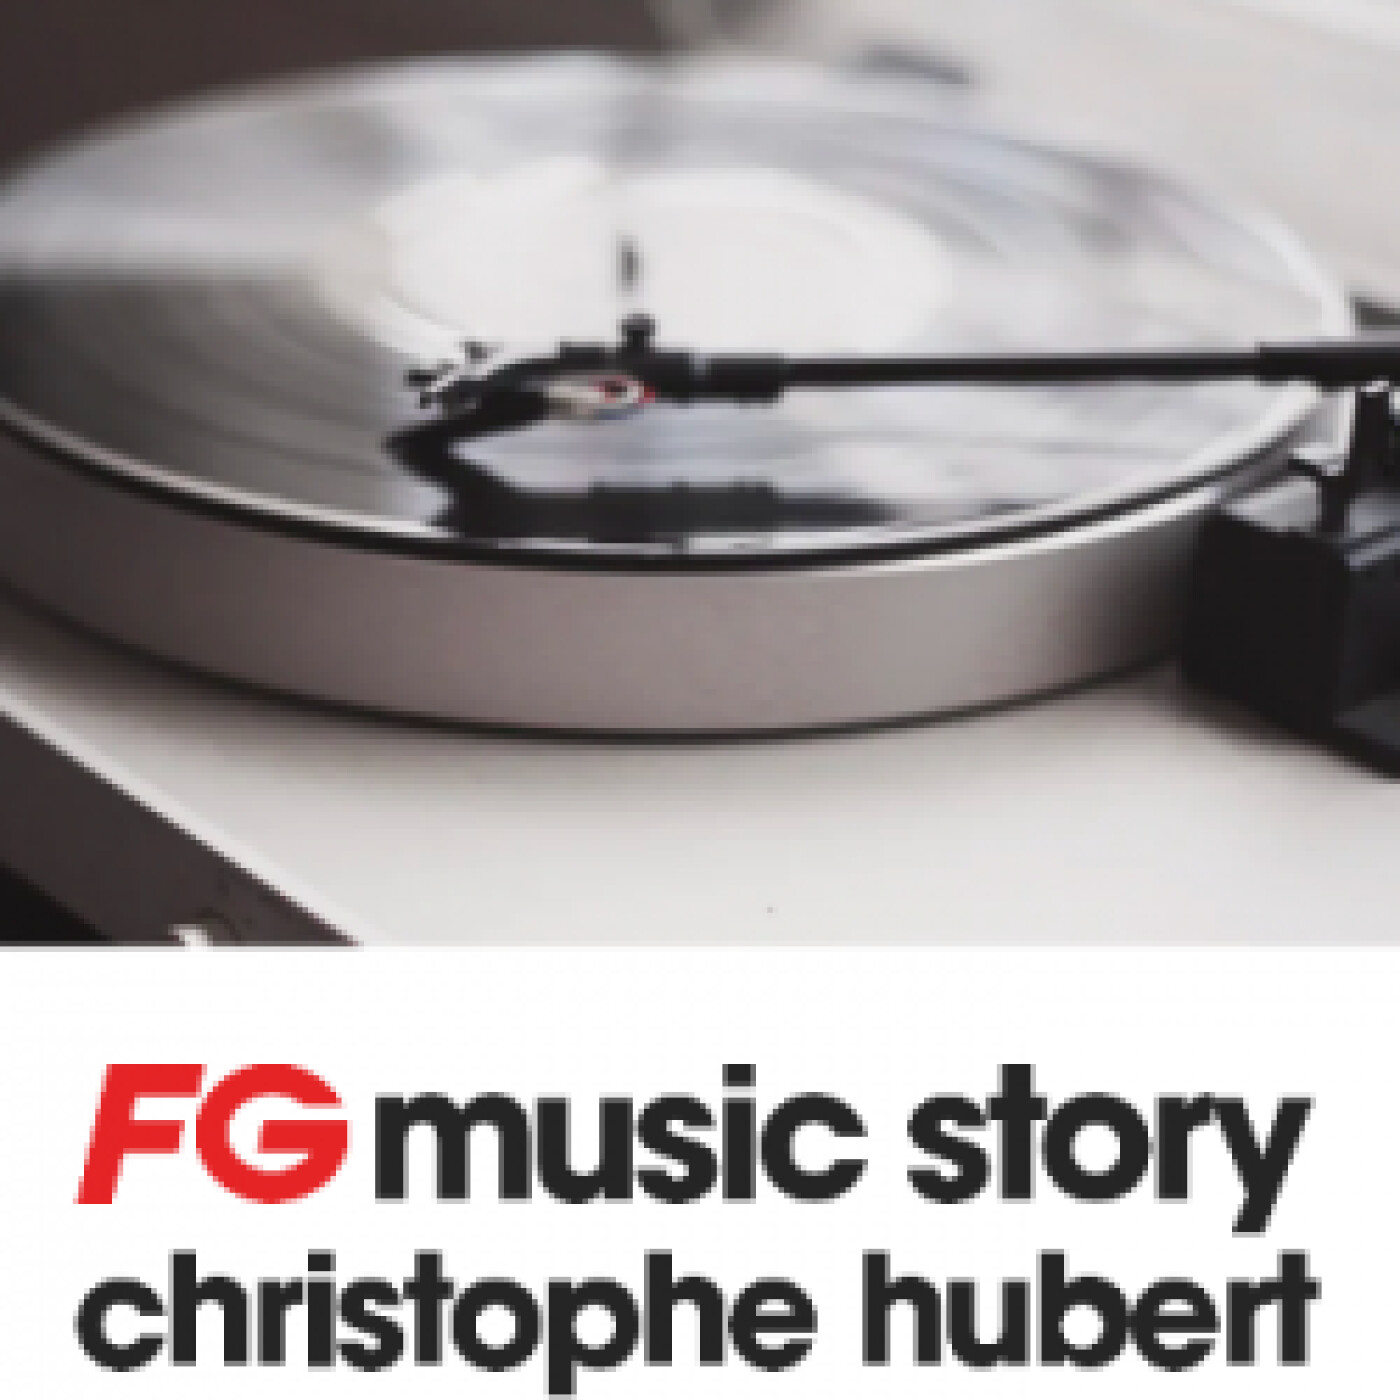 FG MUSIC STORY : BED